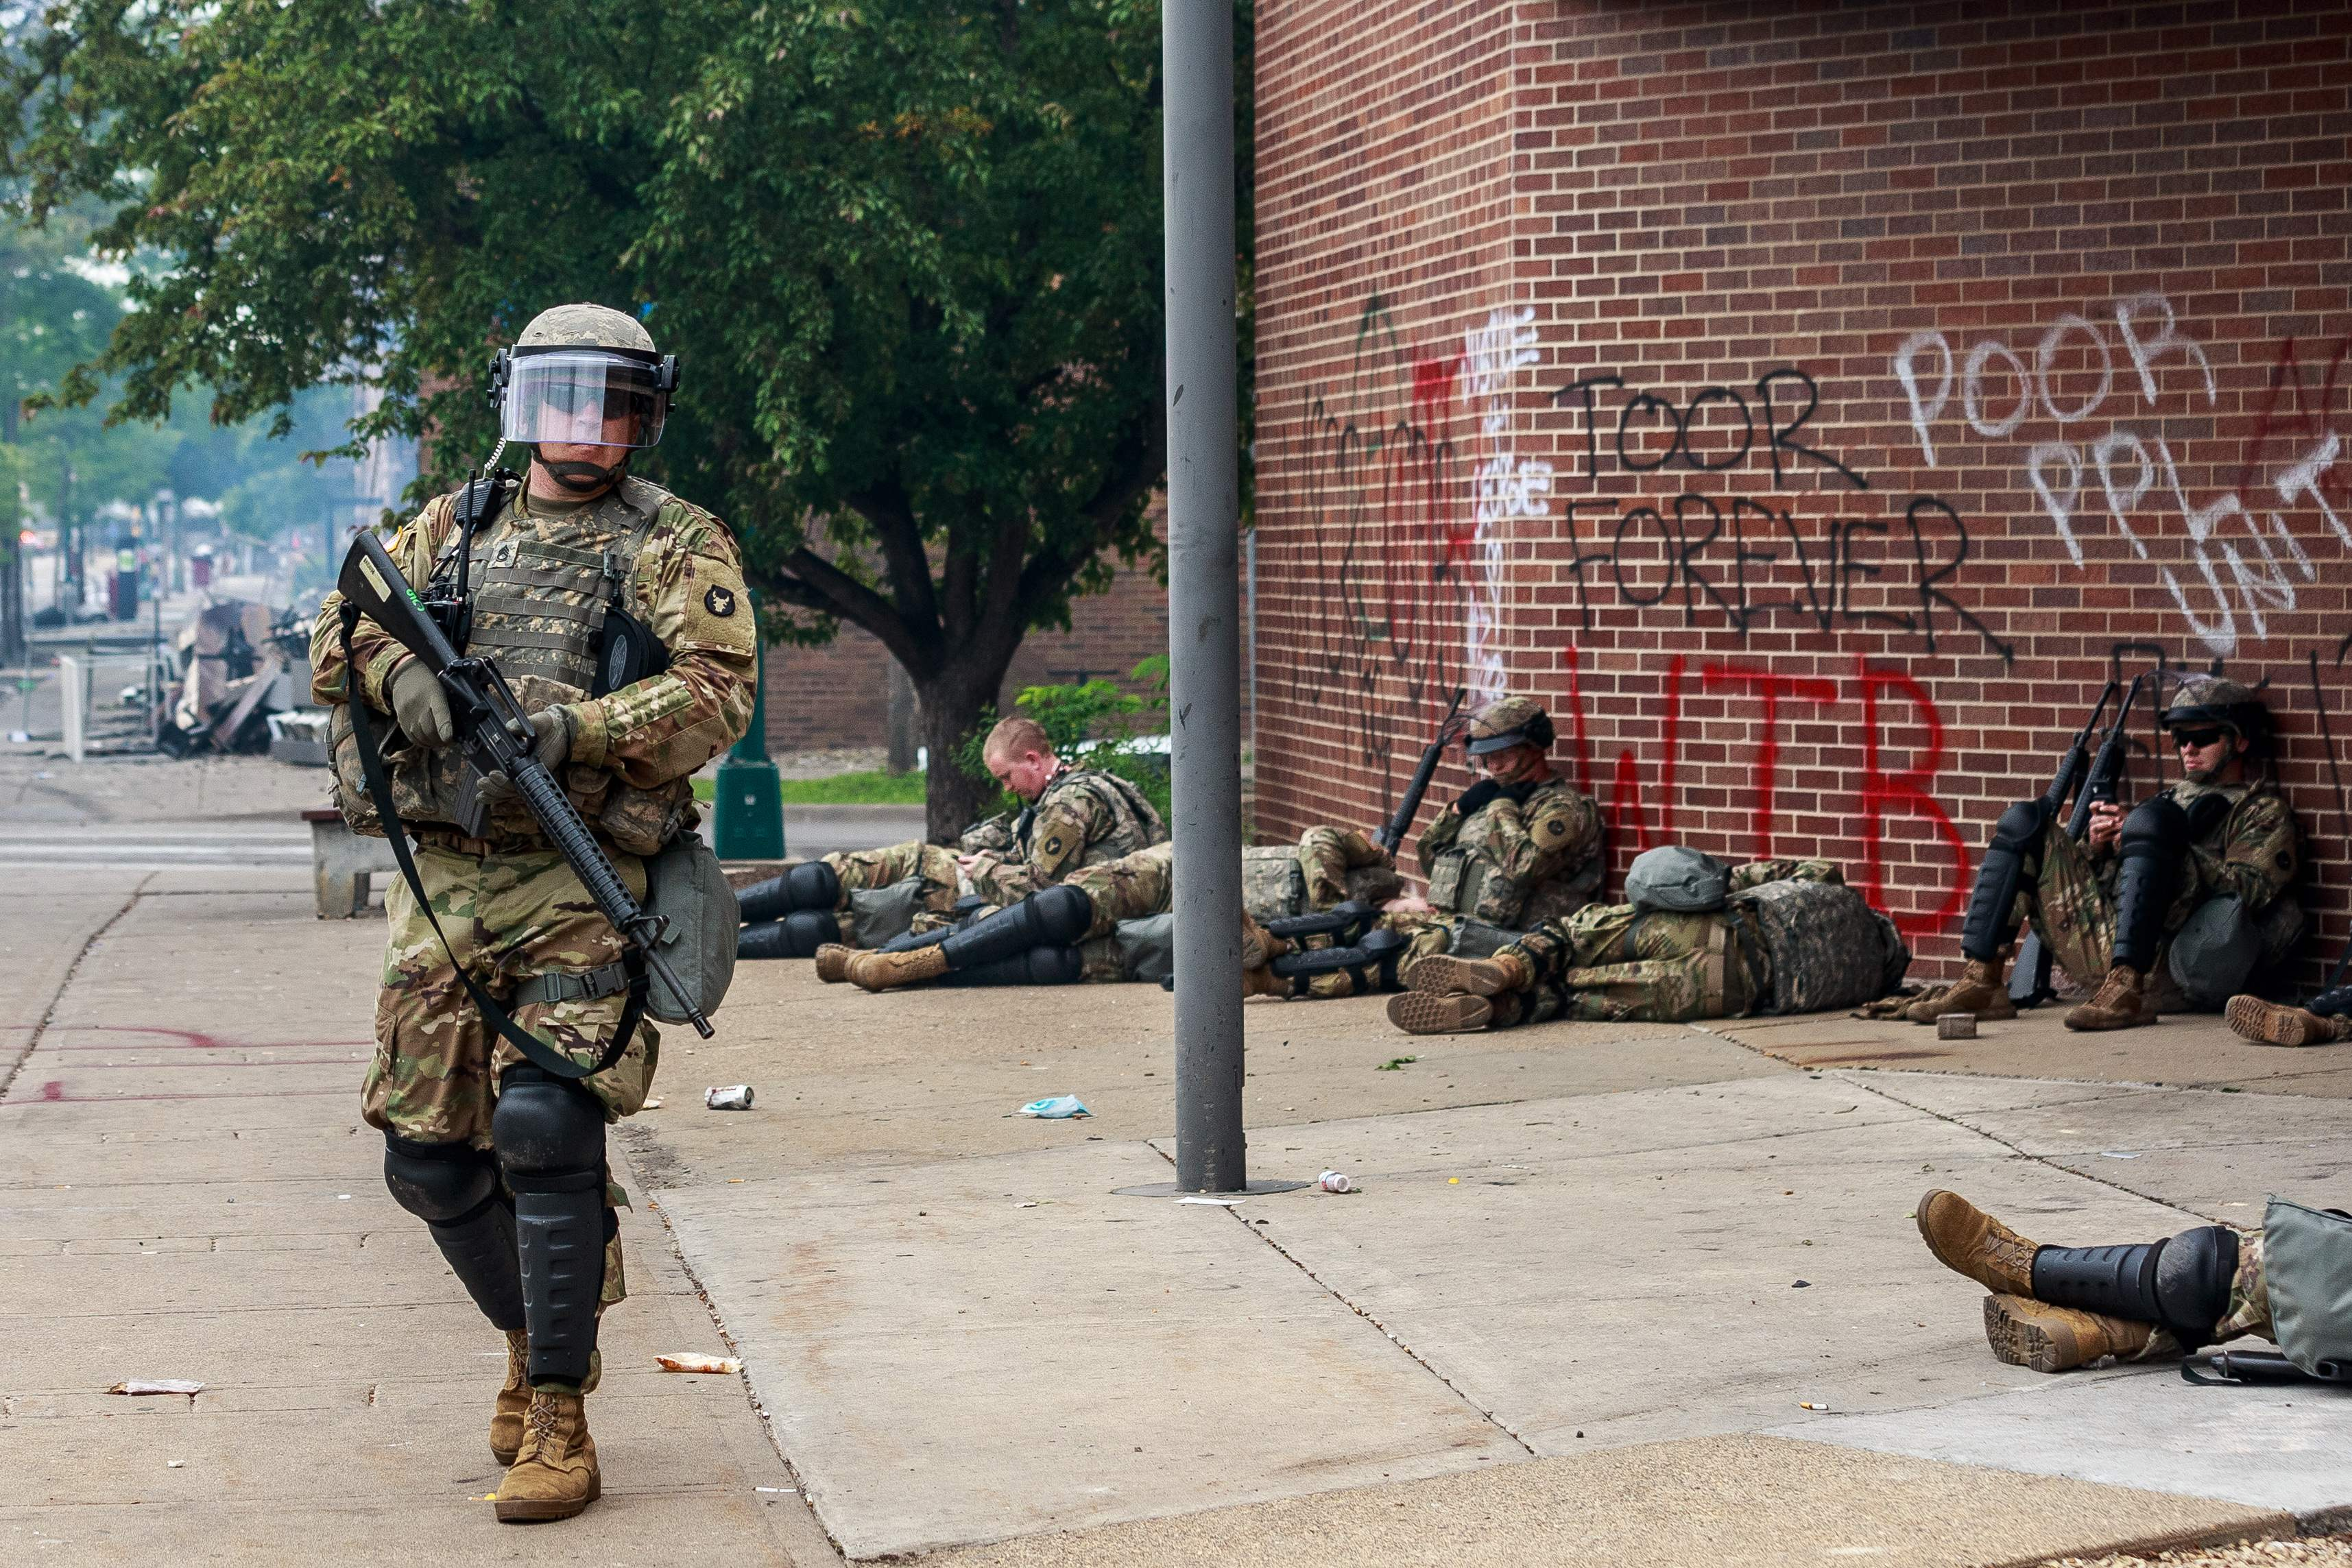 Trump Pulls Military Into Political Fray Of Minneapolis Unrest But